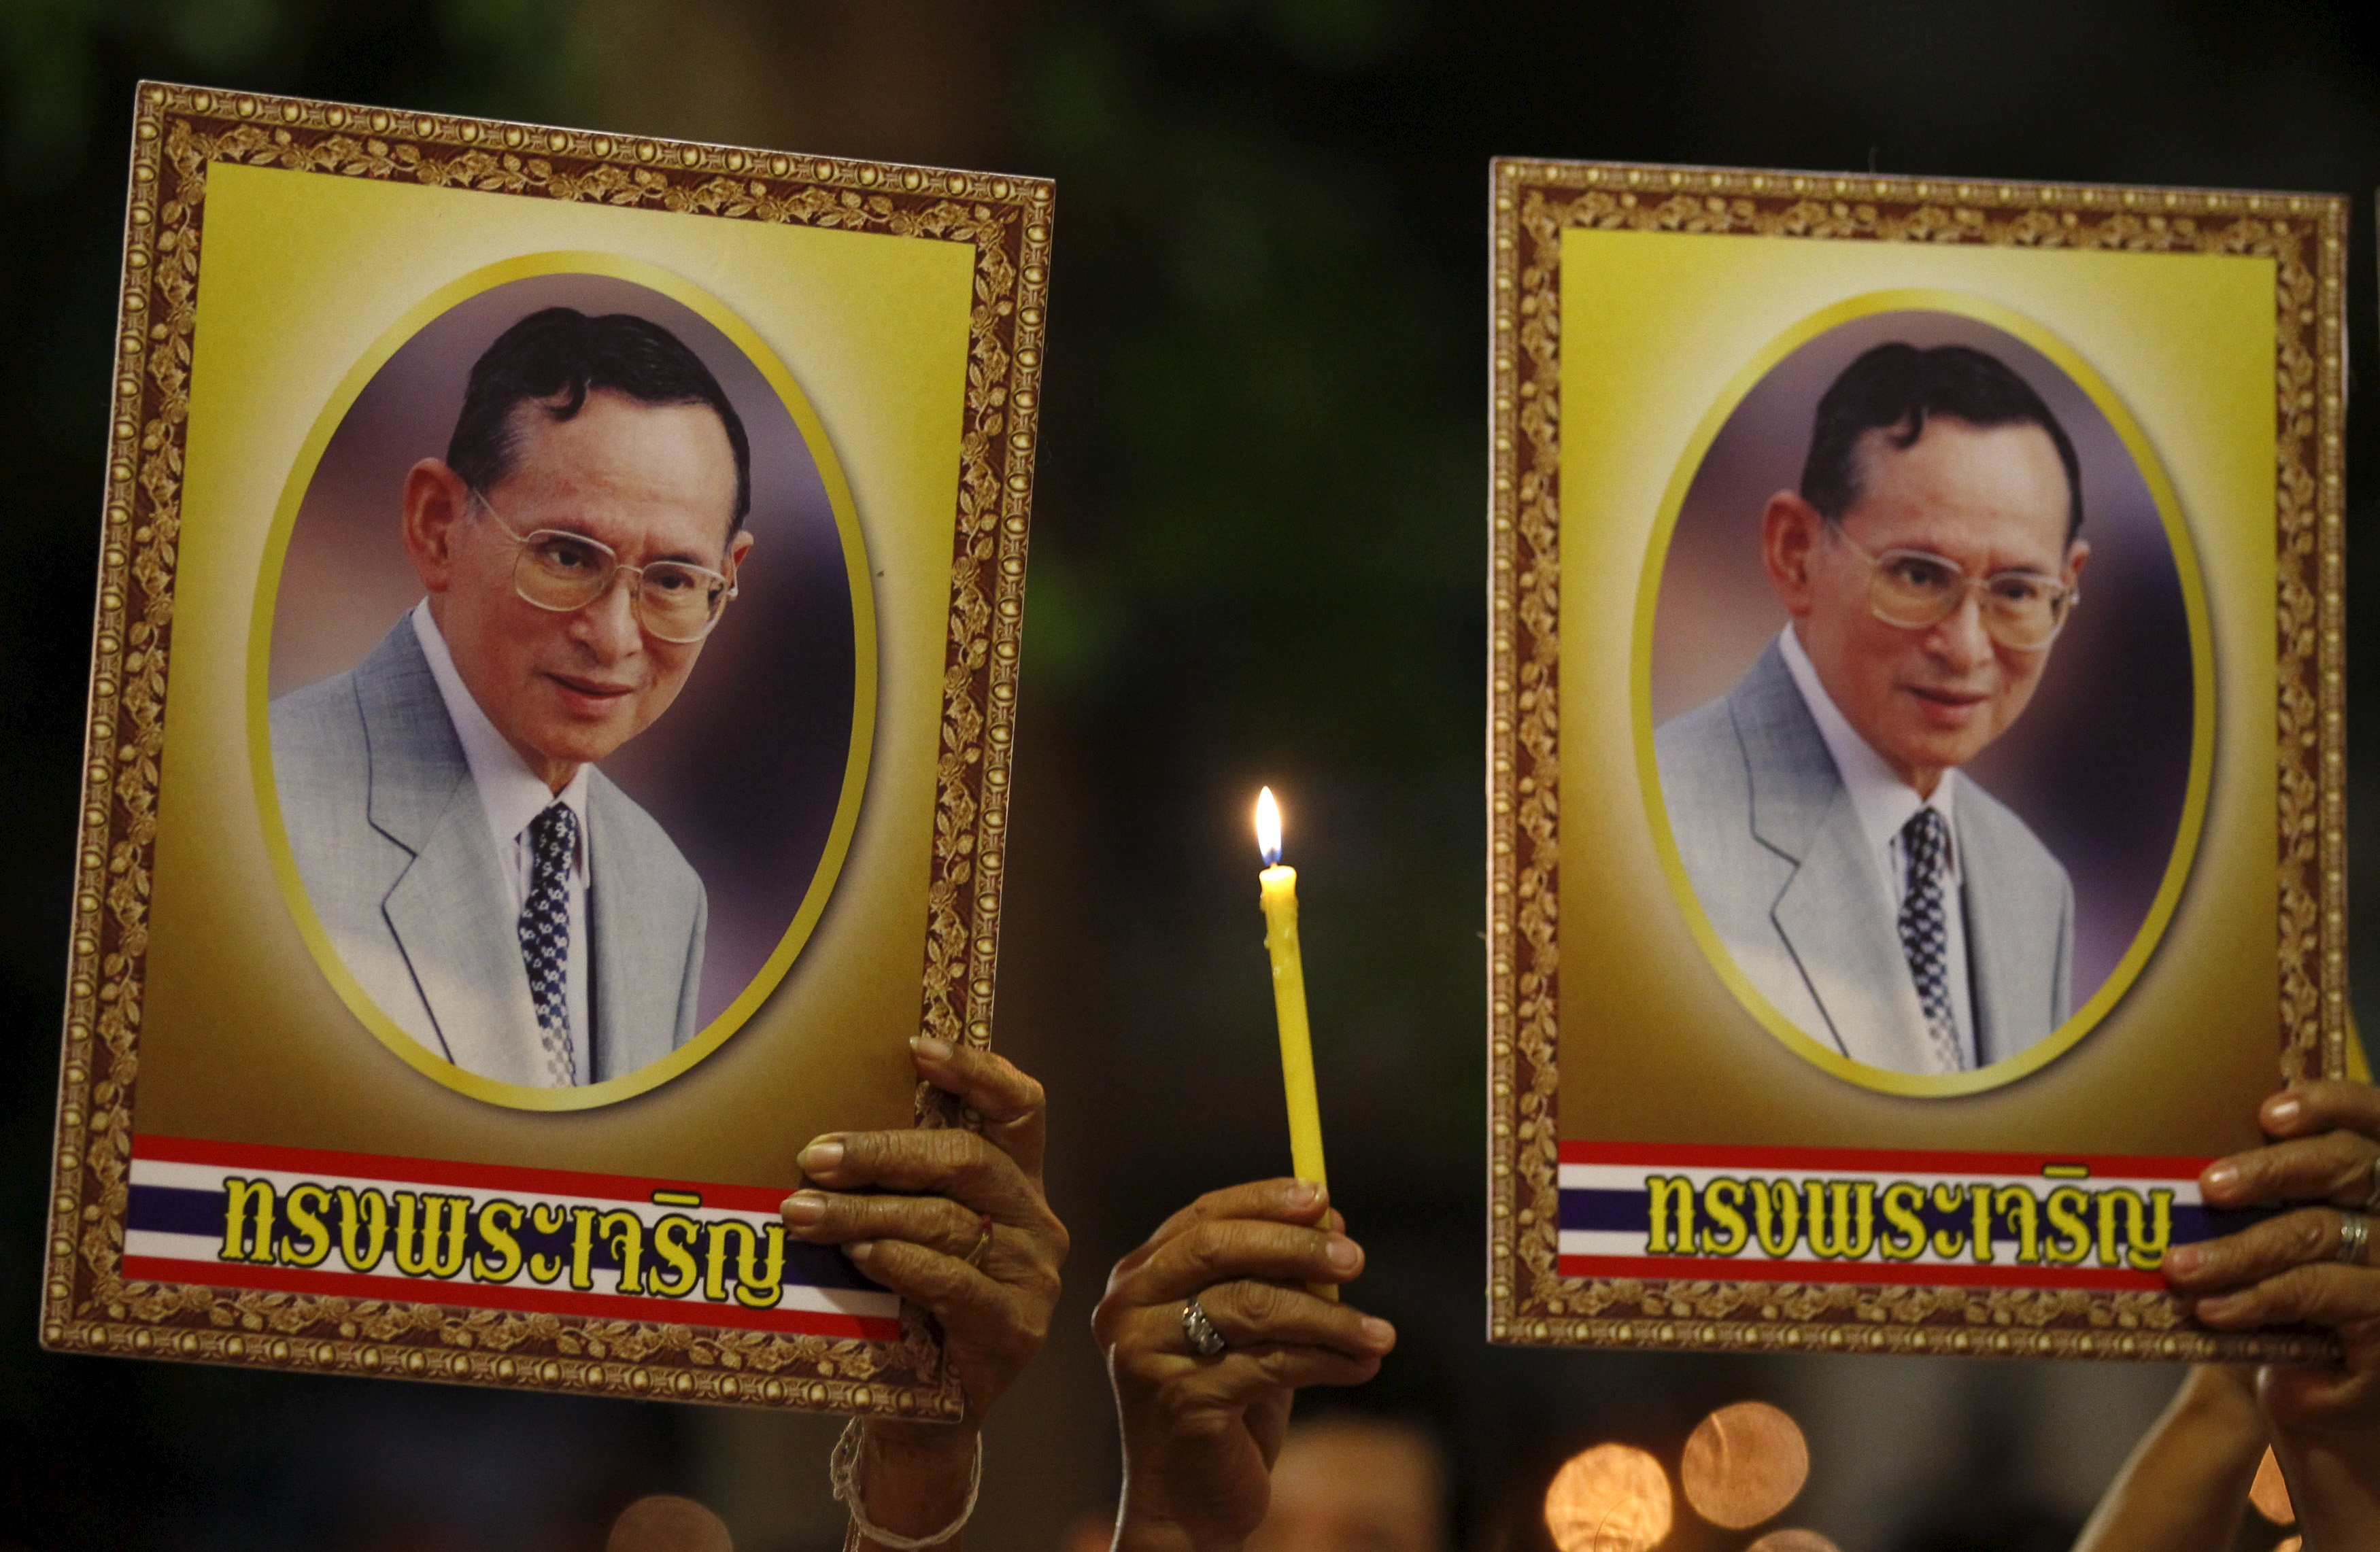 Well-wishers hold a lit candle and portraits of Thailand's King Bhumibol Adulyadej at Siriraj hospital in Bangkok, on Dec. 5, 2015.